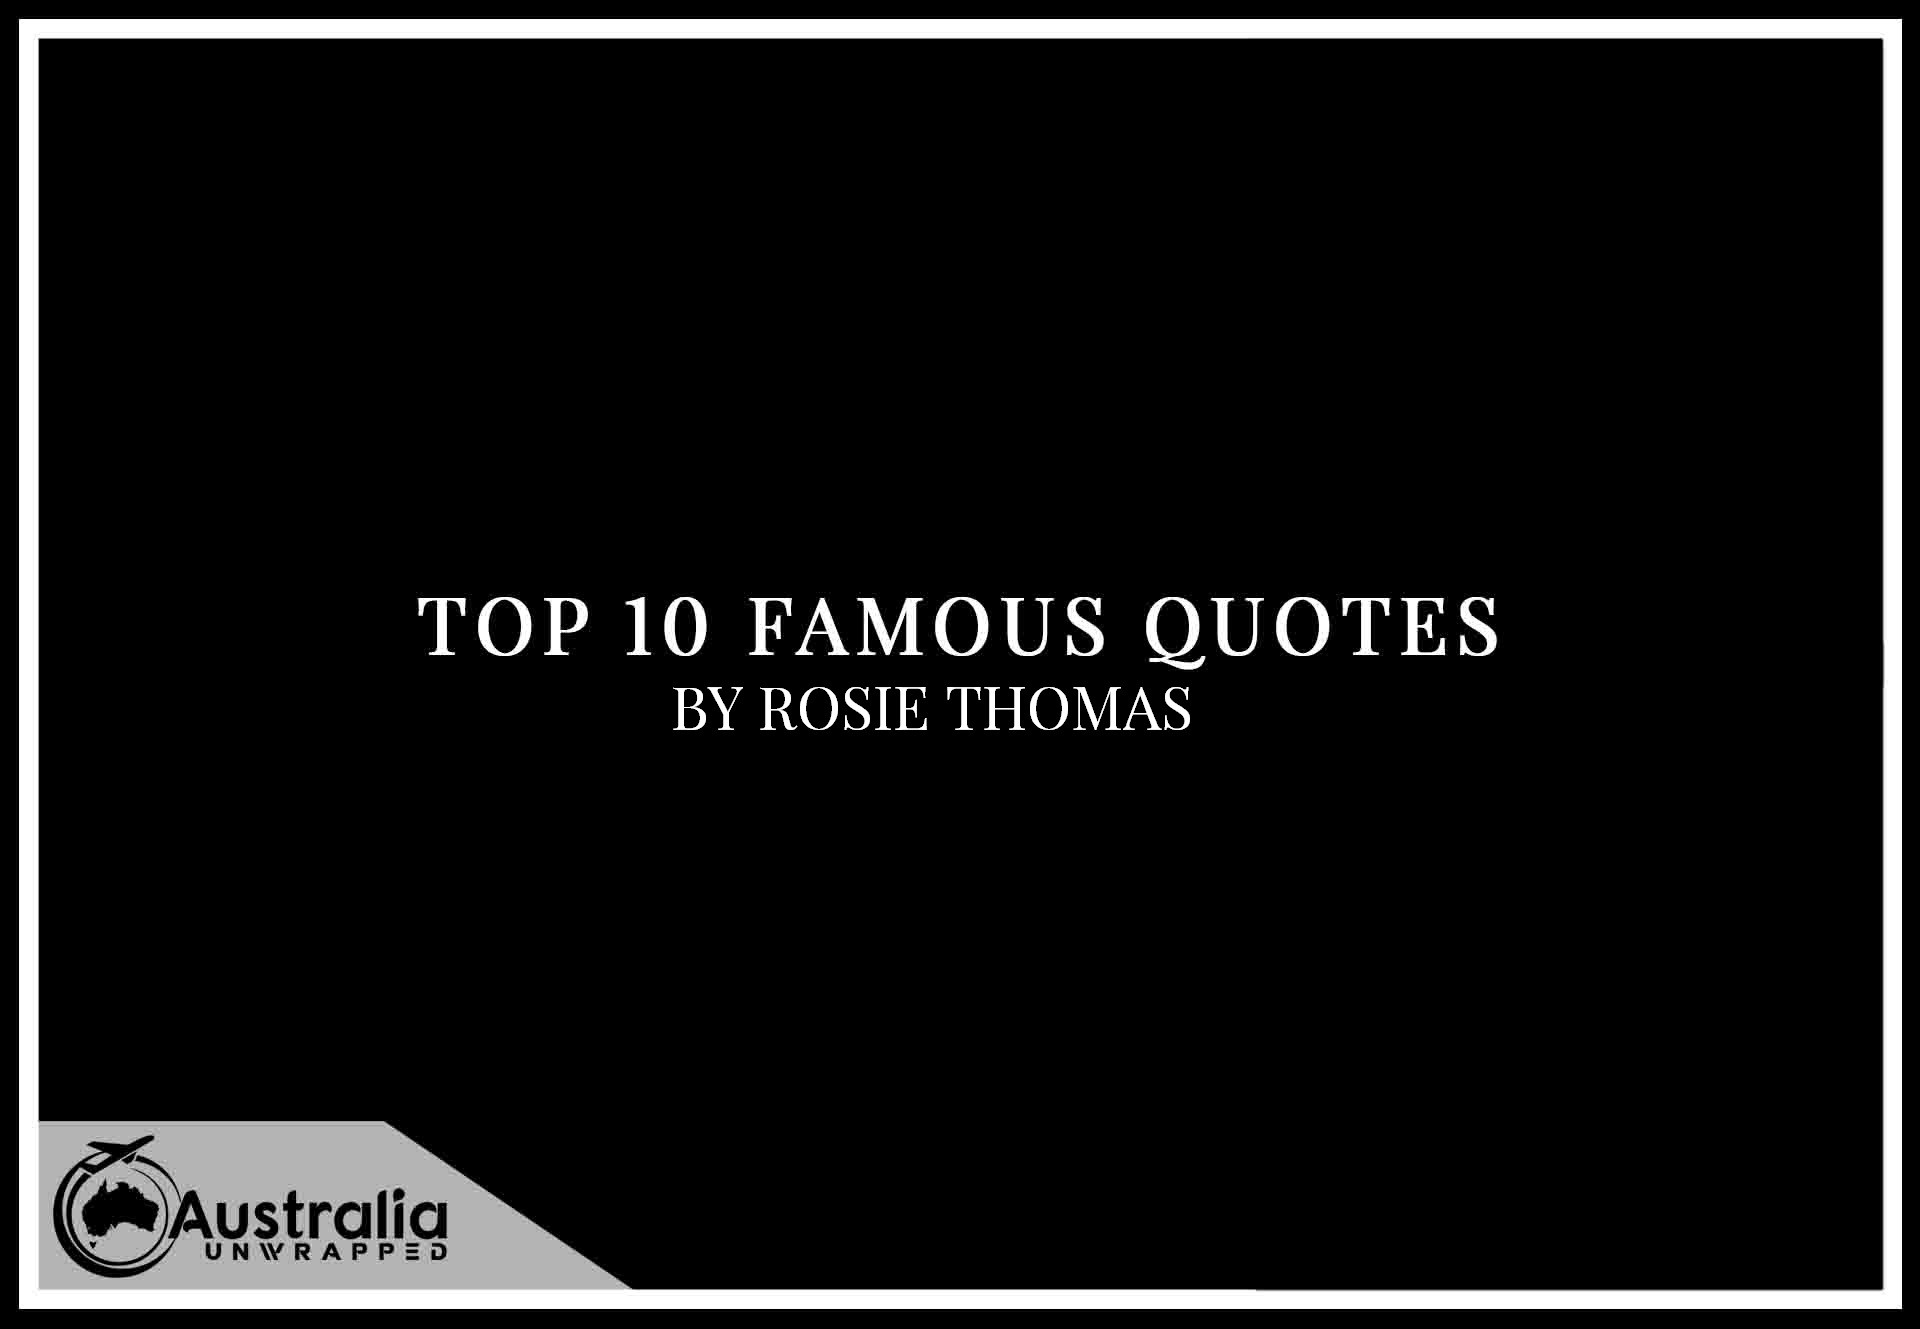 Top 10 Famous Quotes by Author Rosie Thomas